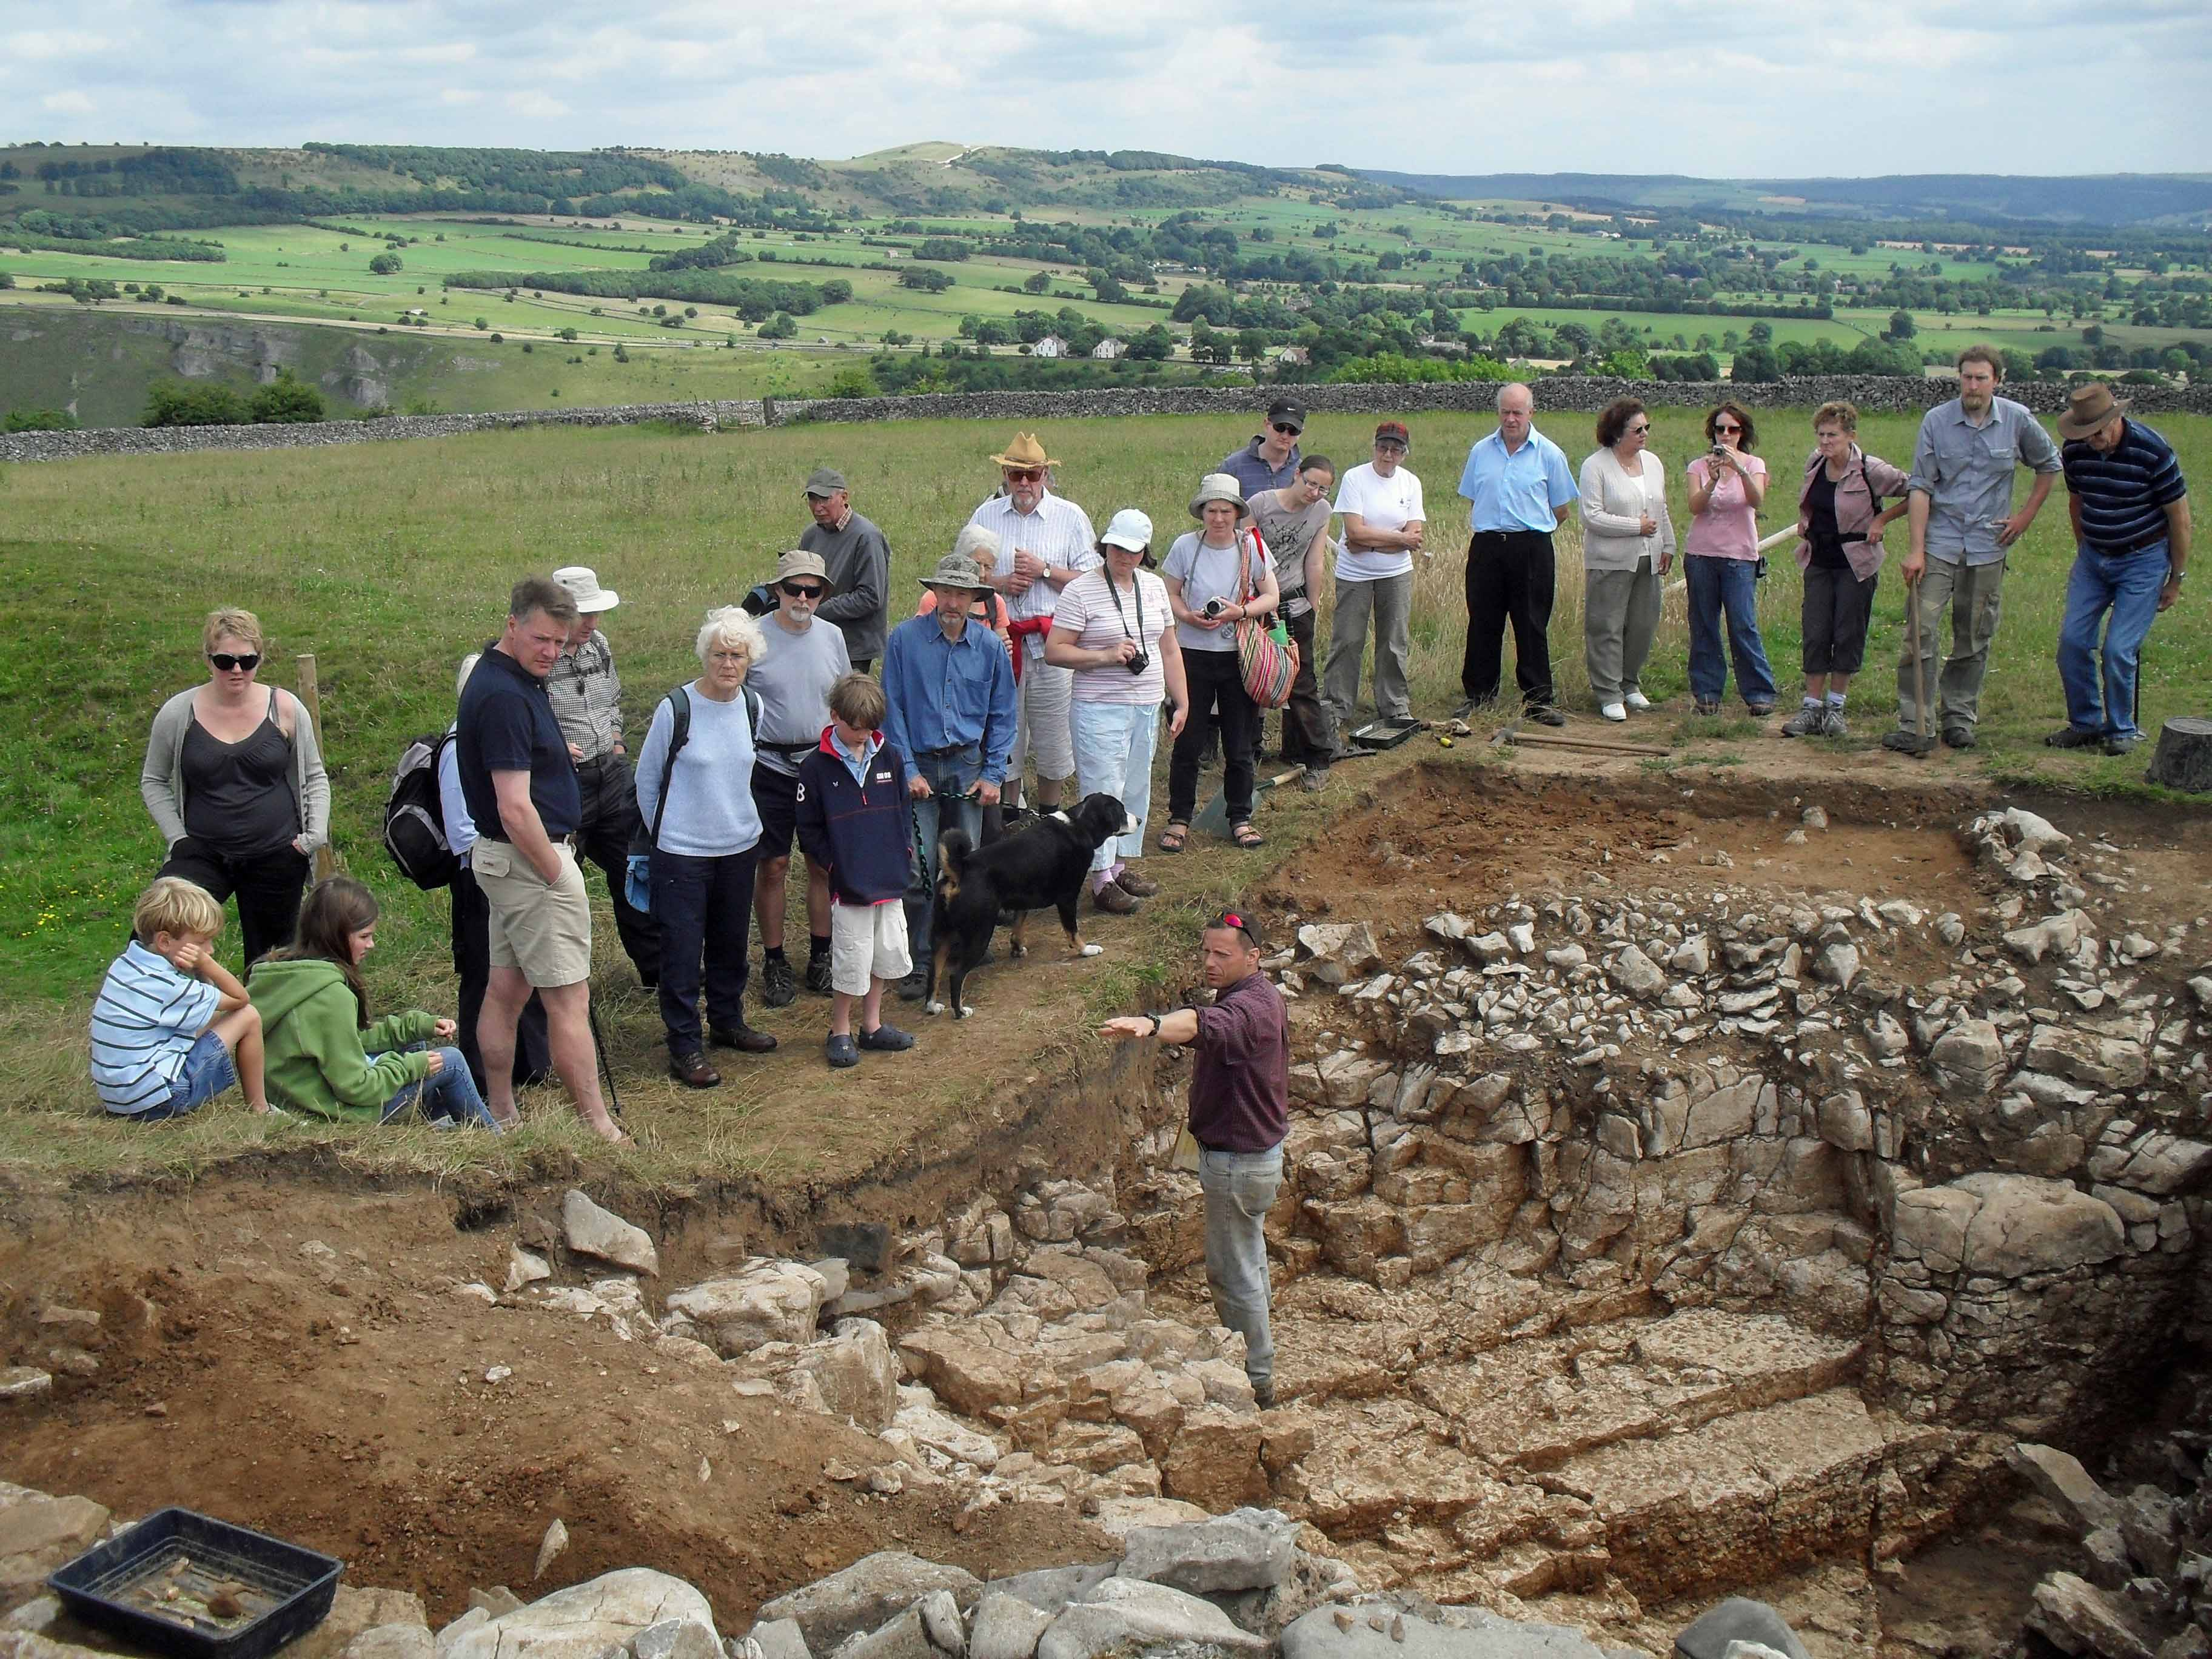 A photo of a group of people on a hillside, gathered around an archaeological excavation. In the pit can be seen complex rock formations, on which a man stands, addressing the group.